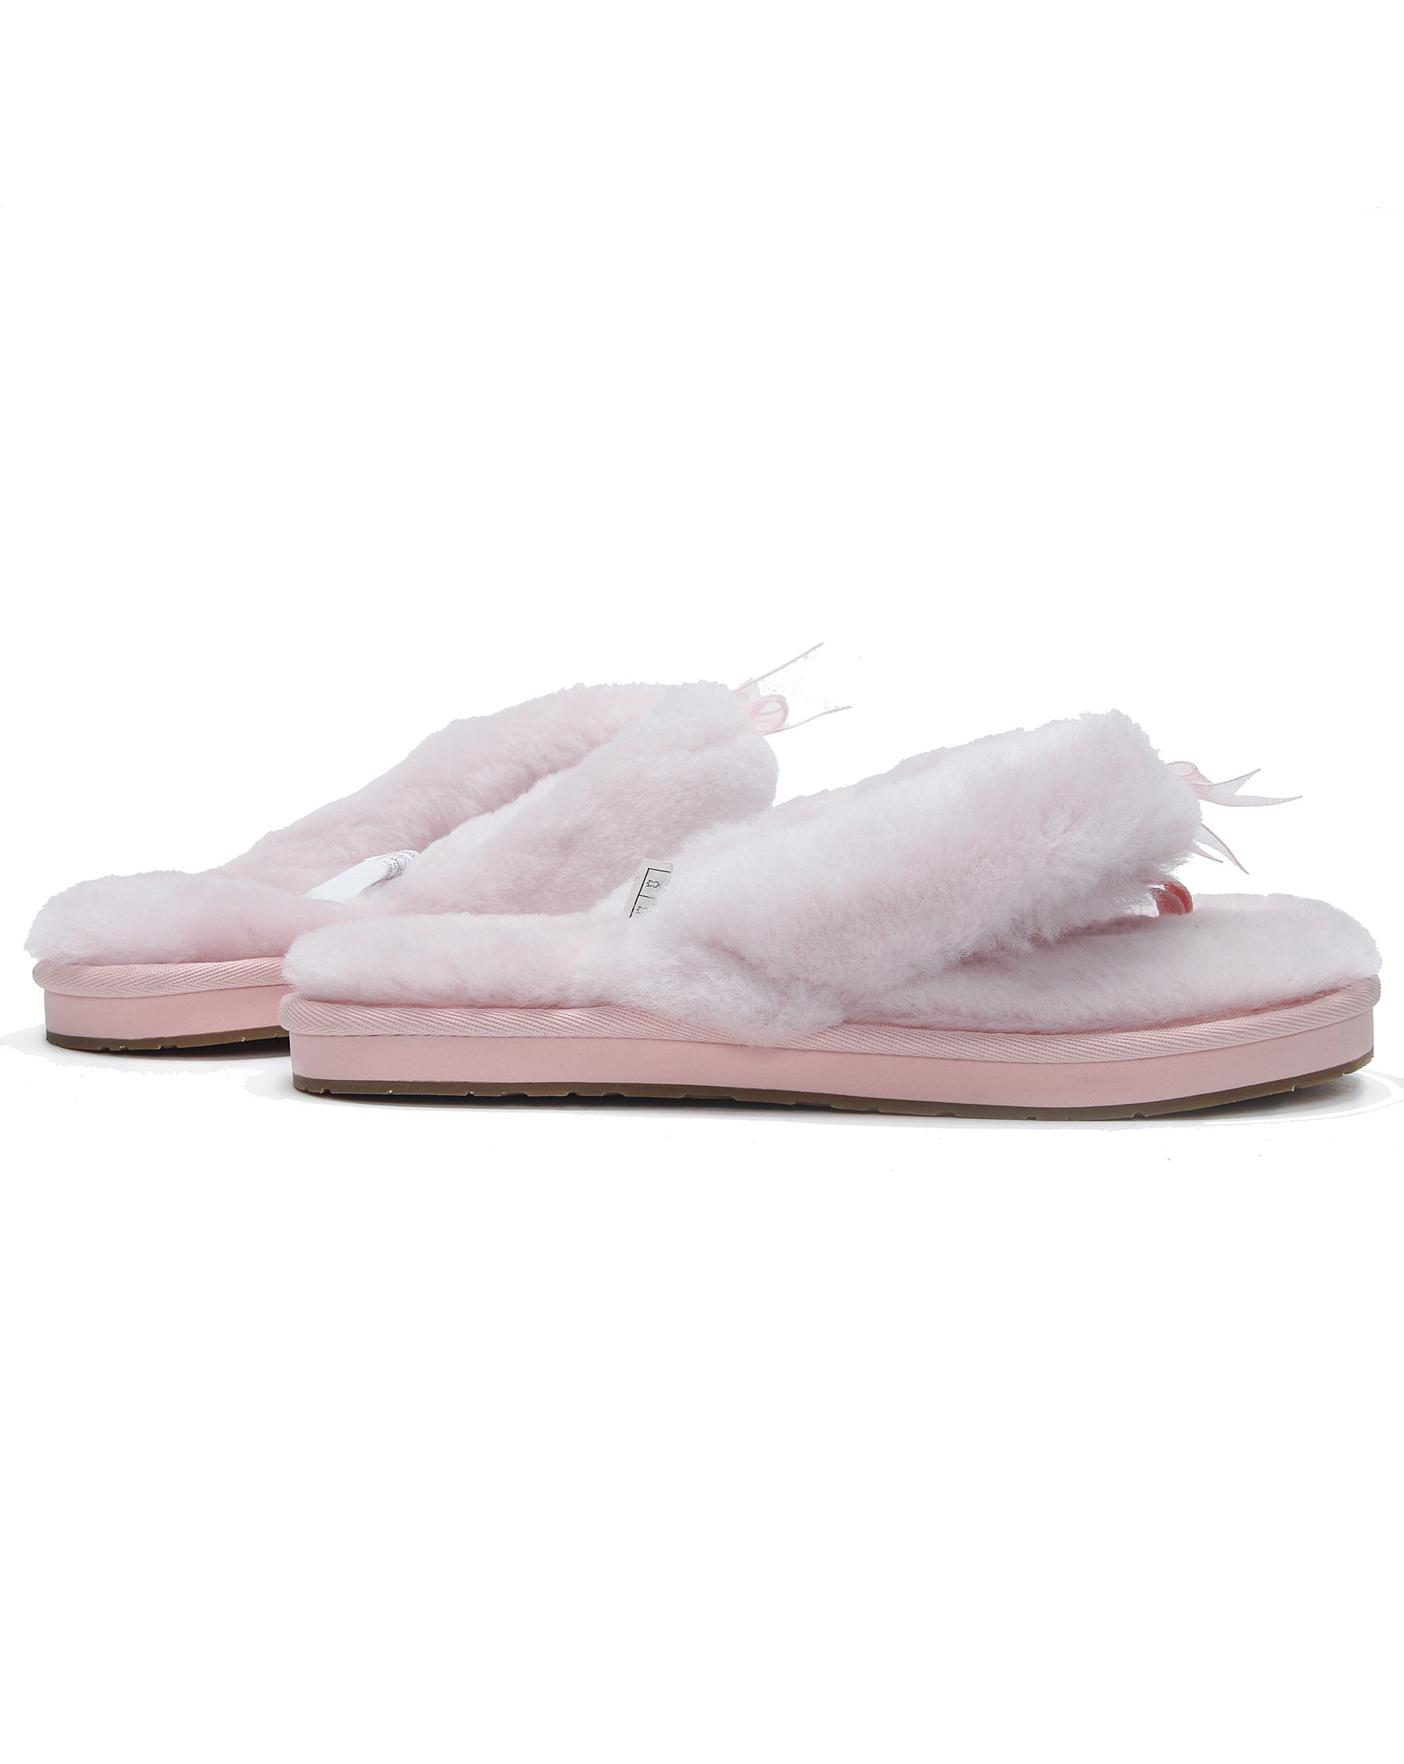 76124673bfe0 Description. This item is despatched direct from the supplier. UGG Fluff II Flip  Flop Slippers ...